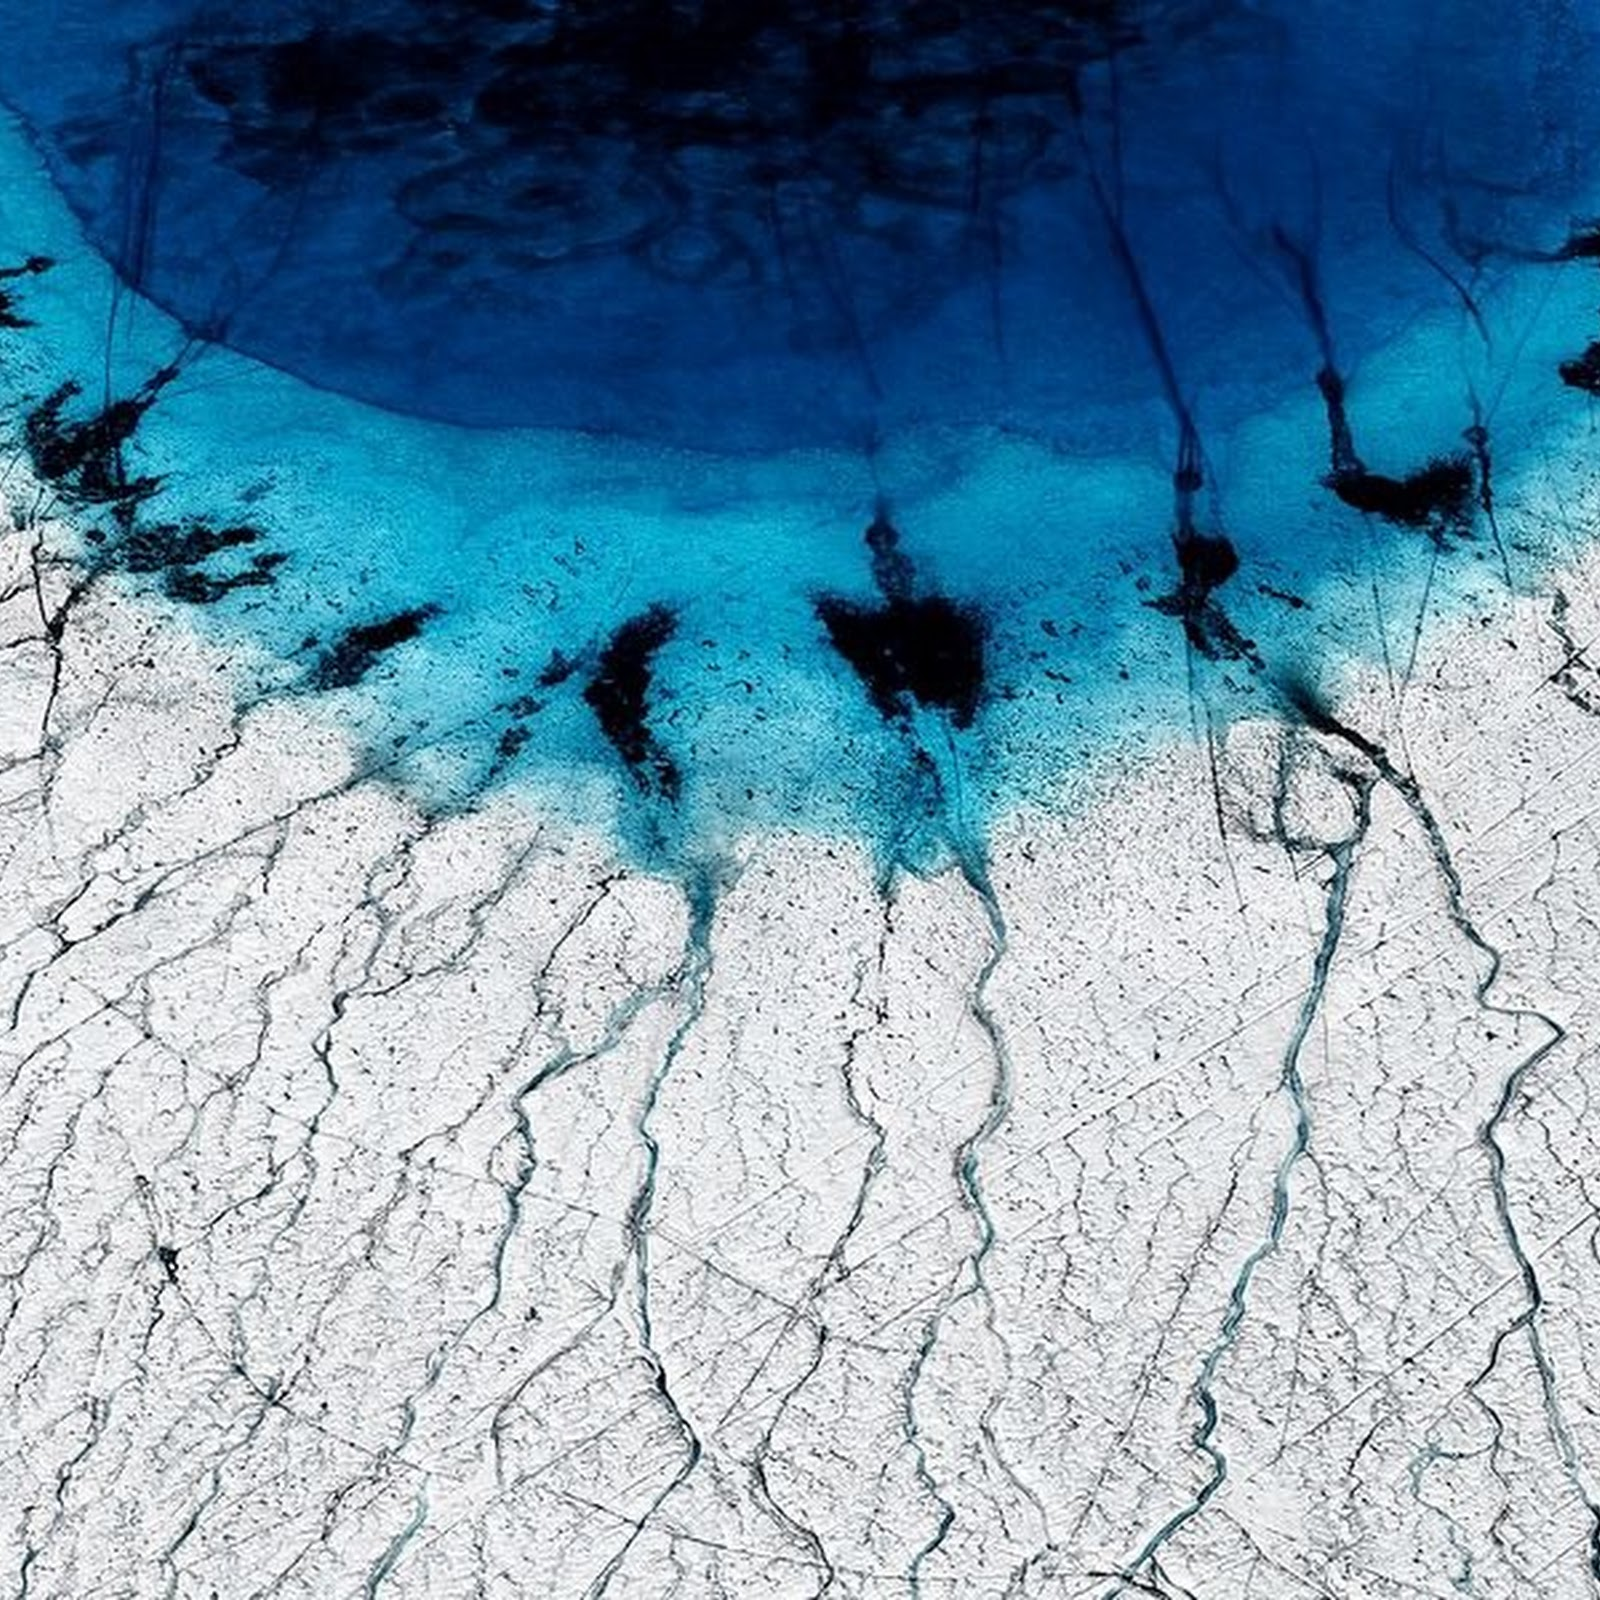 The Terrifying Beauty of Melting Icecaps